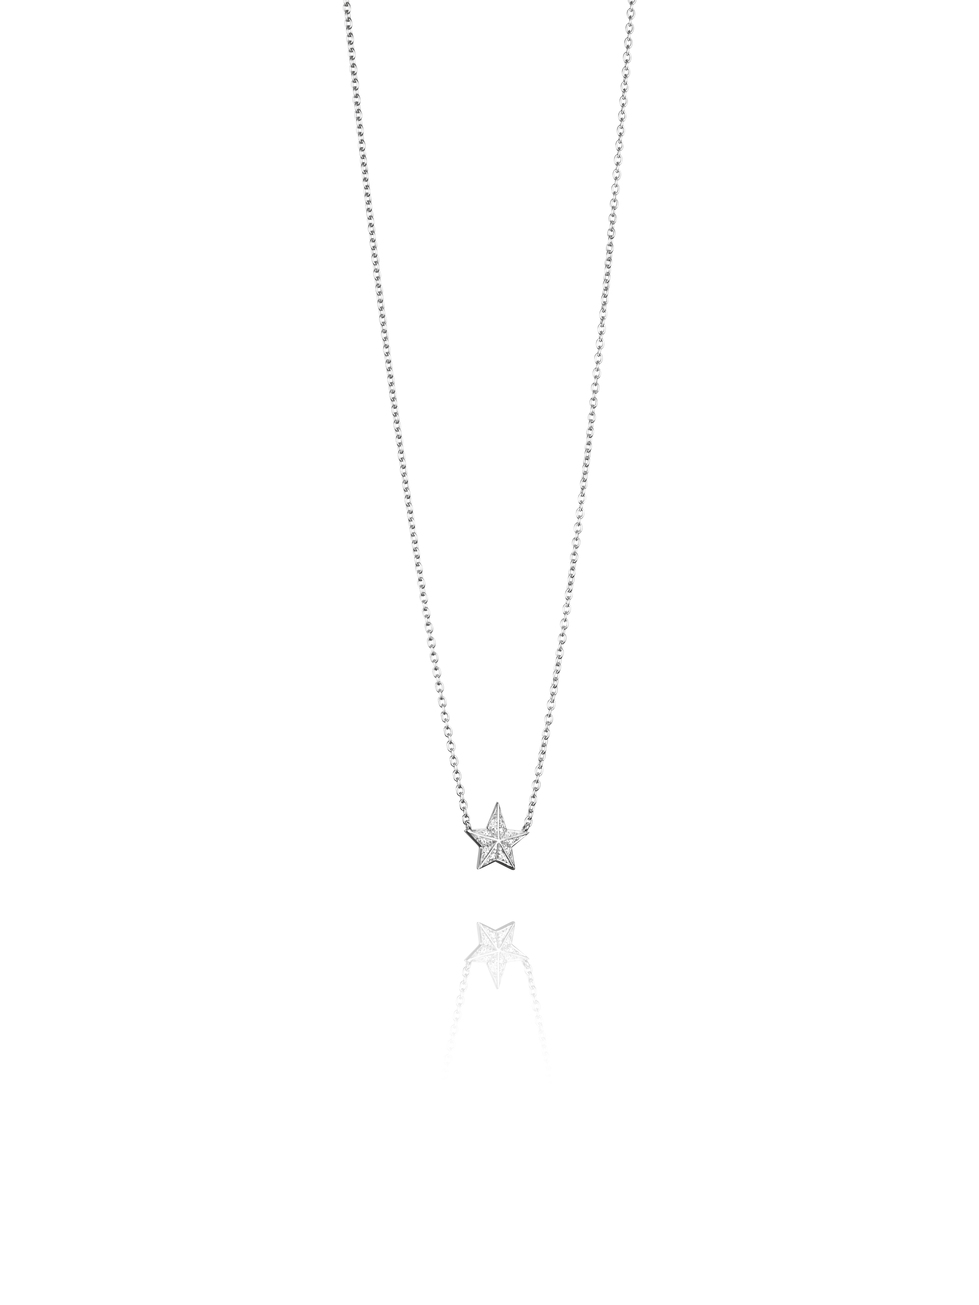 Catch A Falling Star Stars Necklace 10-102-01407(2)